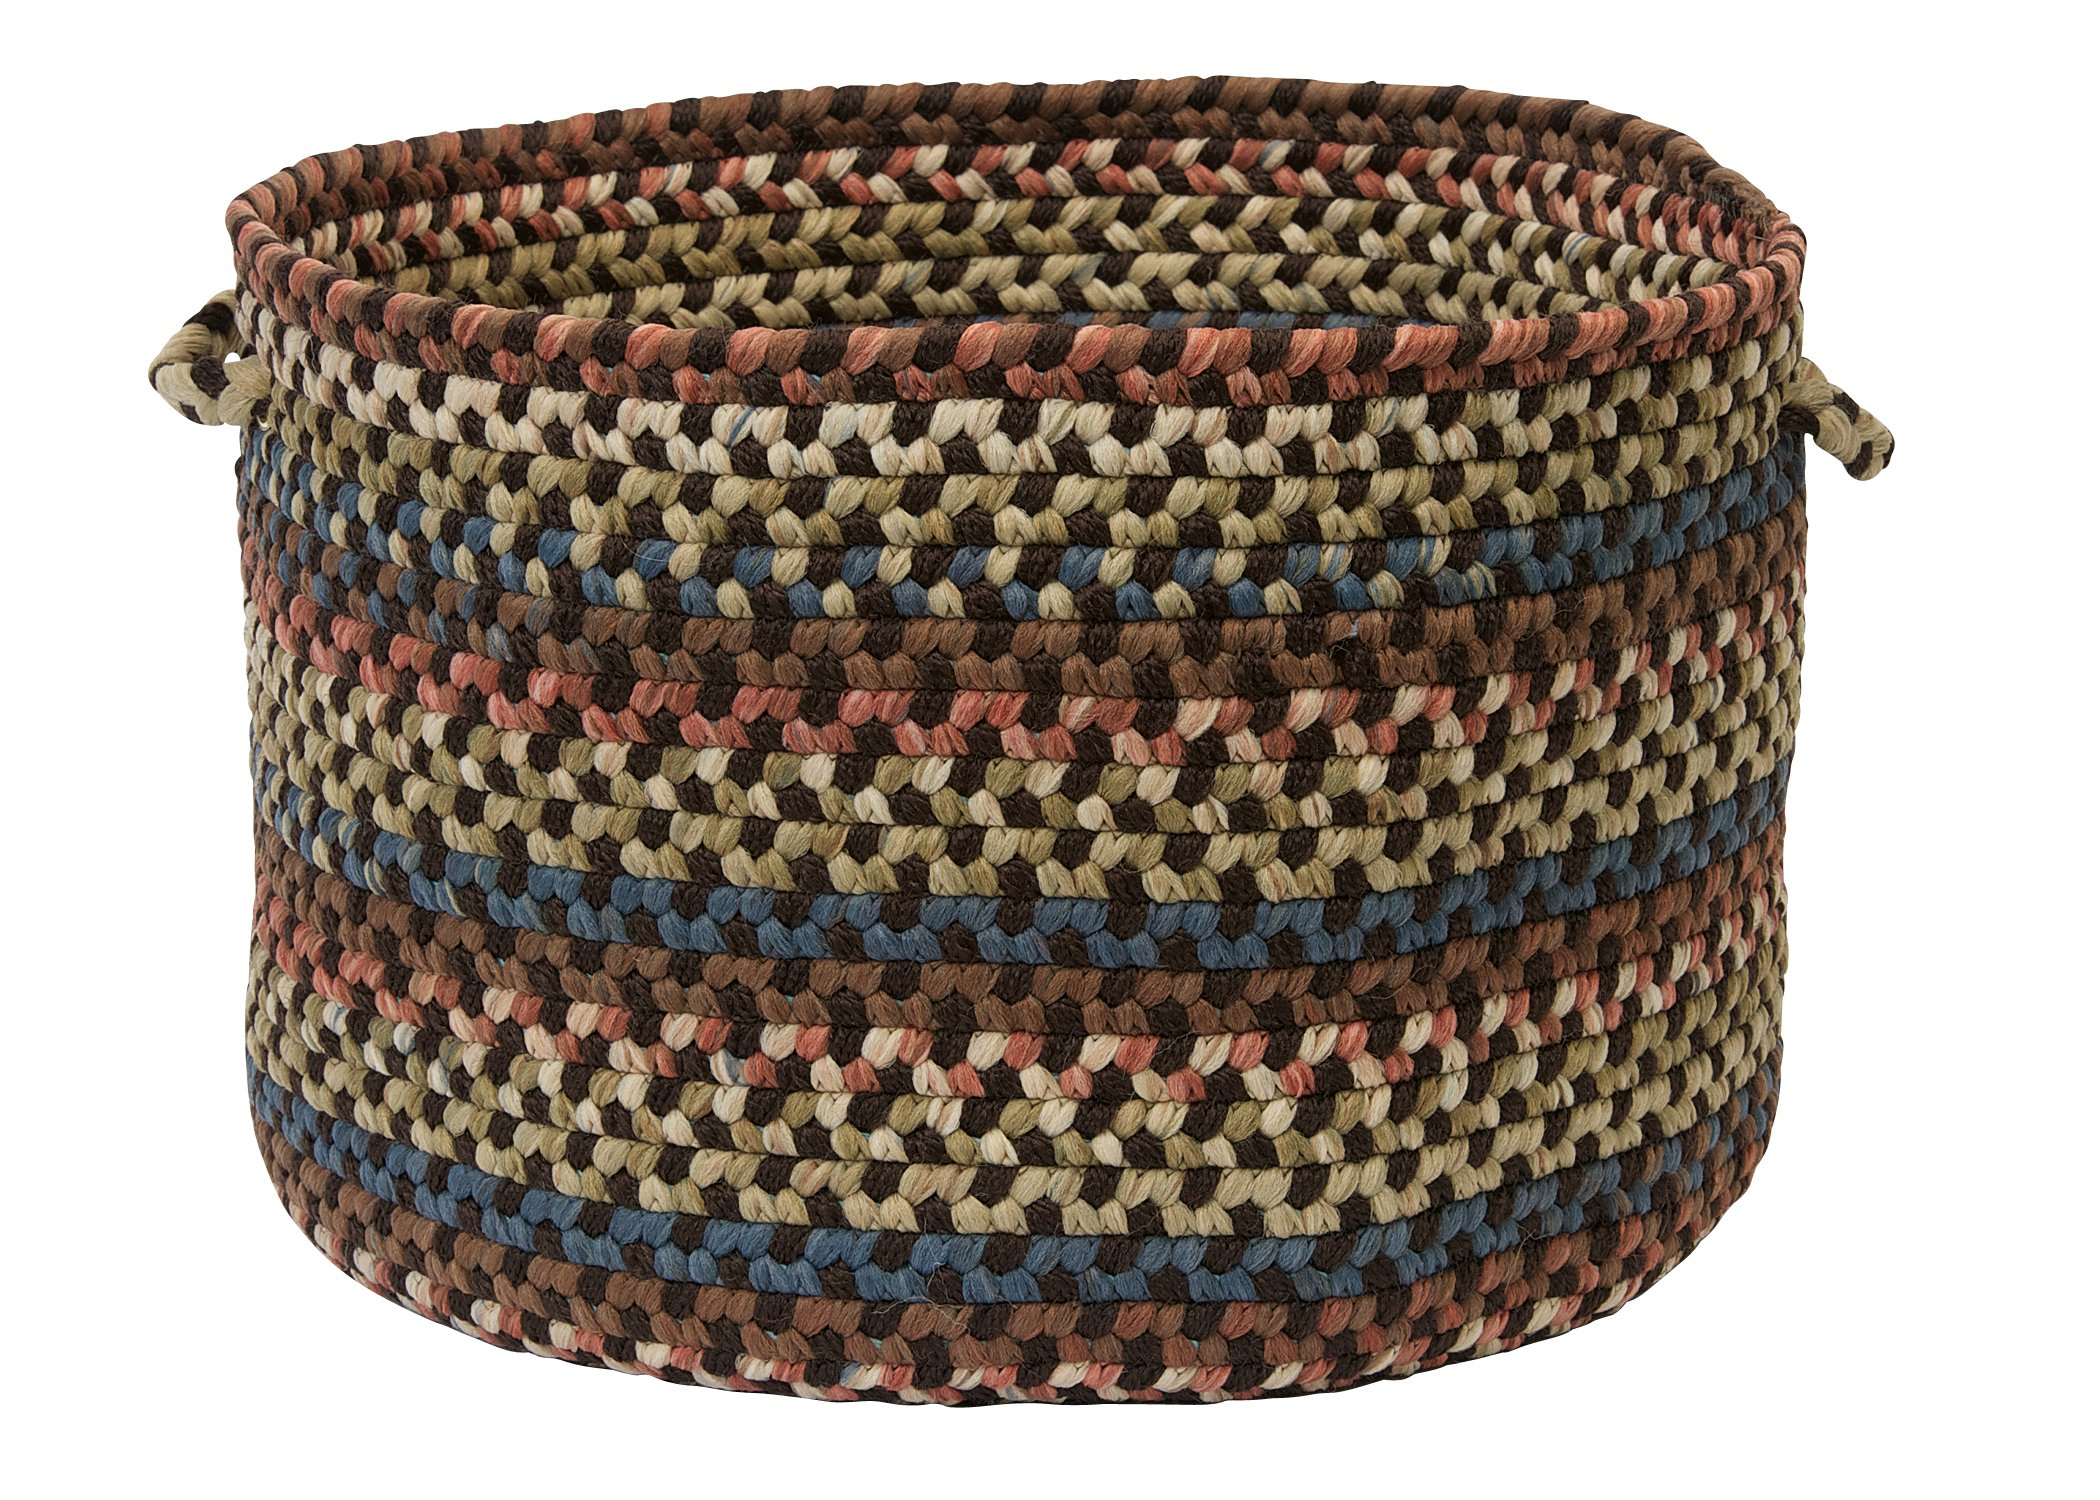 Colonial Mills CV89 14 by 14 by 10-Inch Cedar Cove Storage Basket, Dark Brown - A Soft Calming and Stylish Wool Blend Multi Purpose Storage Option Durable 35-Percent Wool/65-Percent Nylon Space dye Yarns and Textured Flat-Braid Construction Provide Style and Durability Two Durable Easy-Grip Handles Provide Worry-free Storage Handling - living-room-decor, living-room, baskets-storage - 914 lOsuzTL -